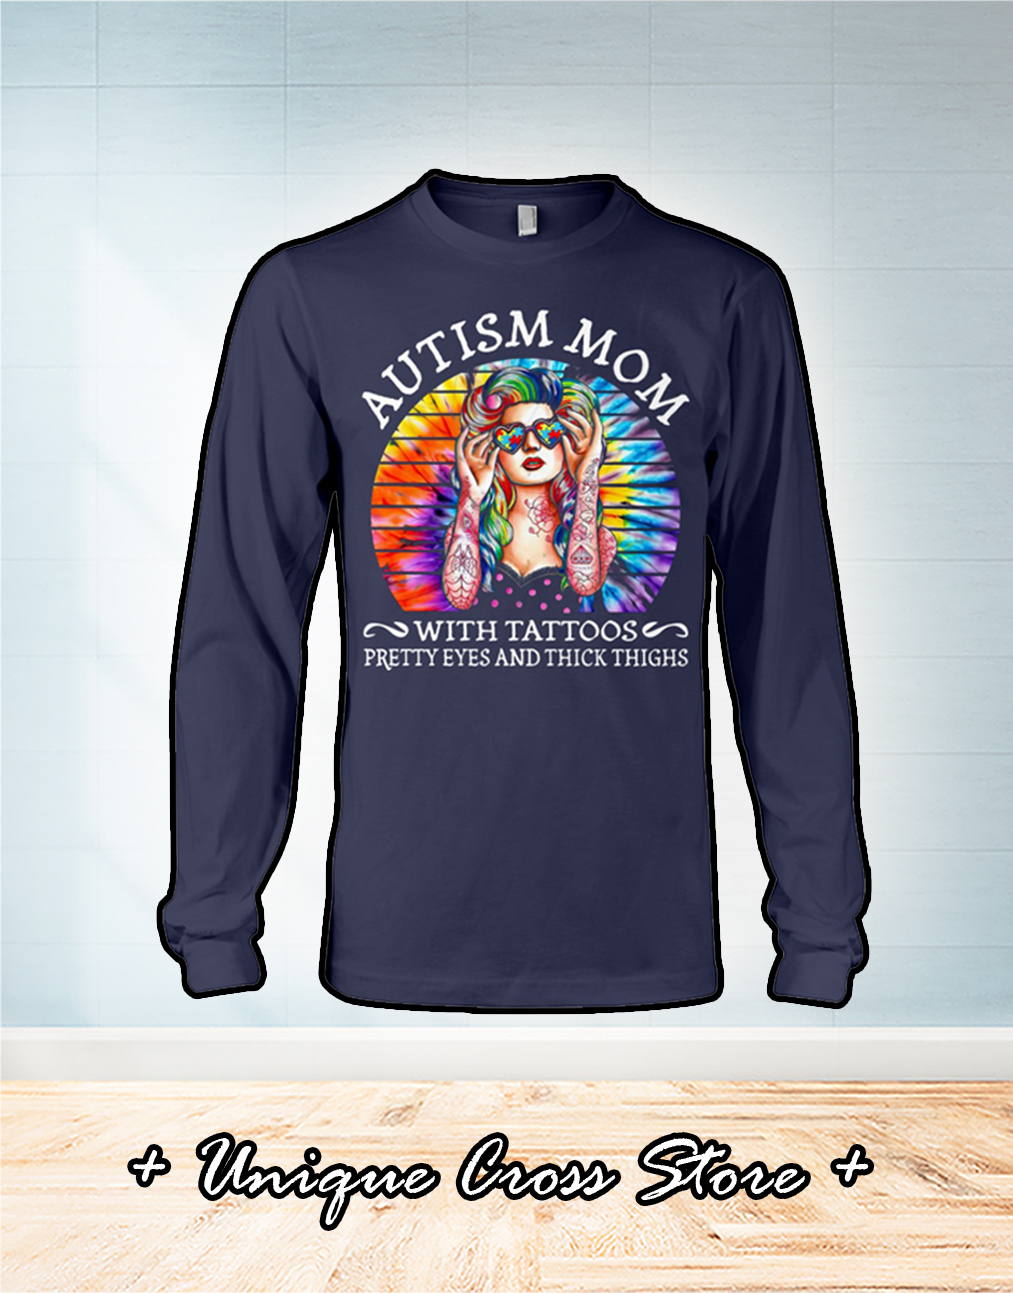 Vintage Autism mom with tattoos pretty eyes and thick thighs shirt